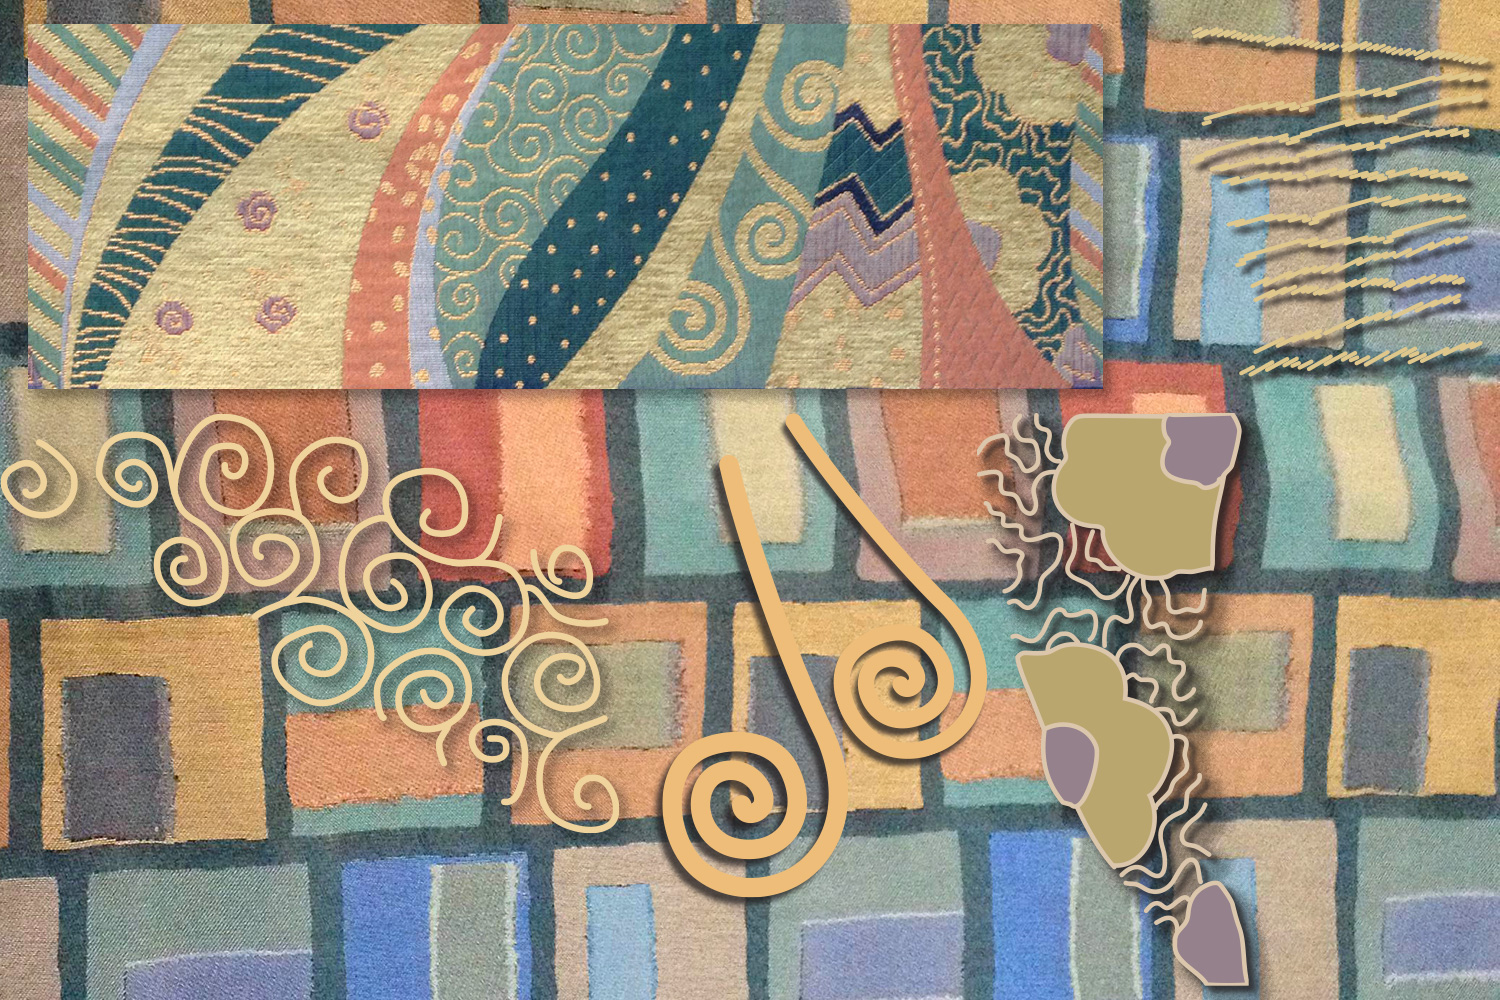 New fabric (2014) in the background, swatch of 2013 fabric upper right; vectorized shapes based upon the 2013 fabric.